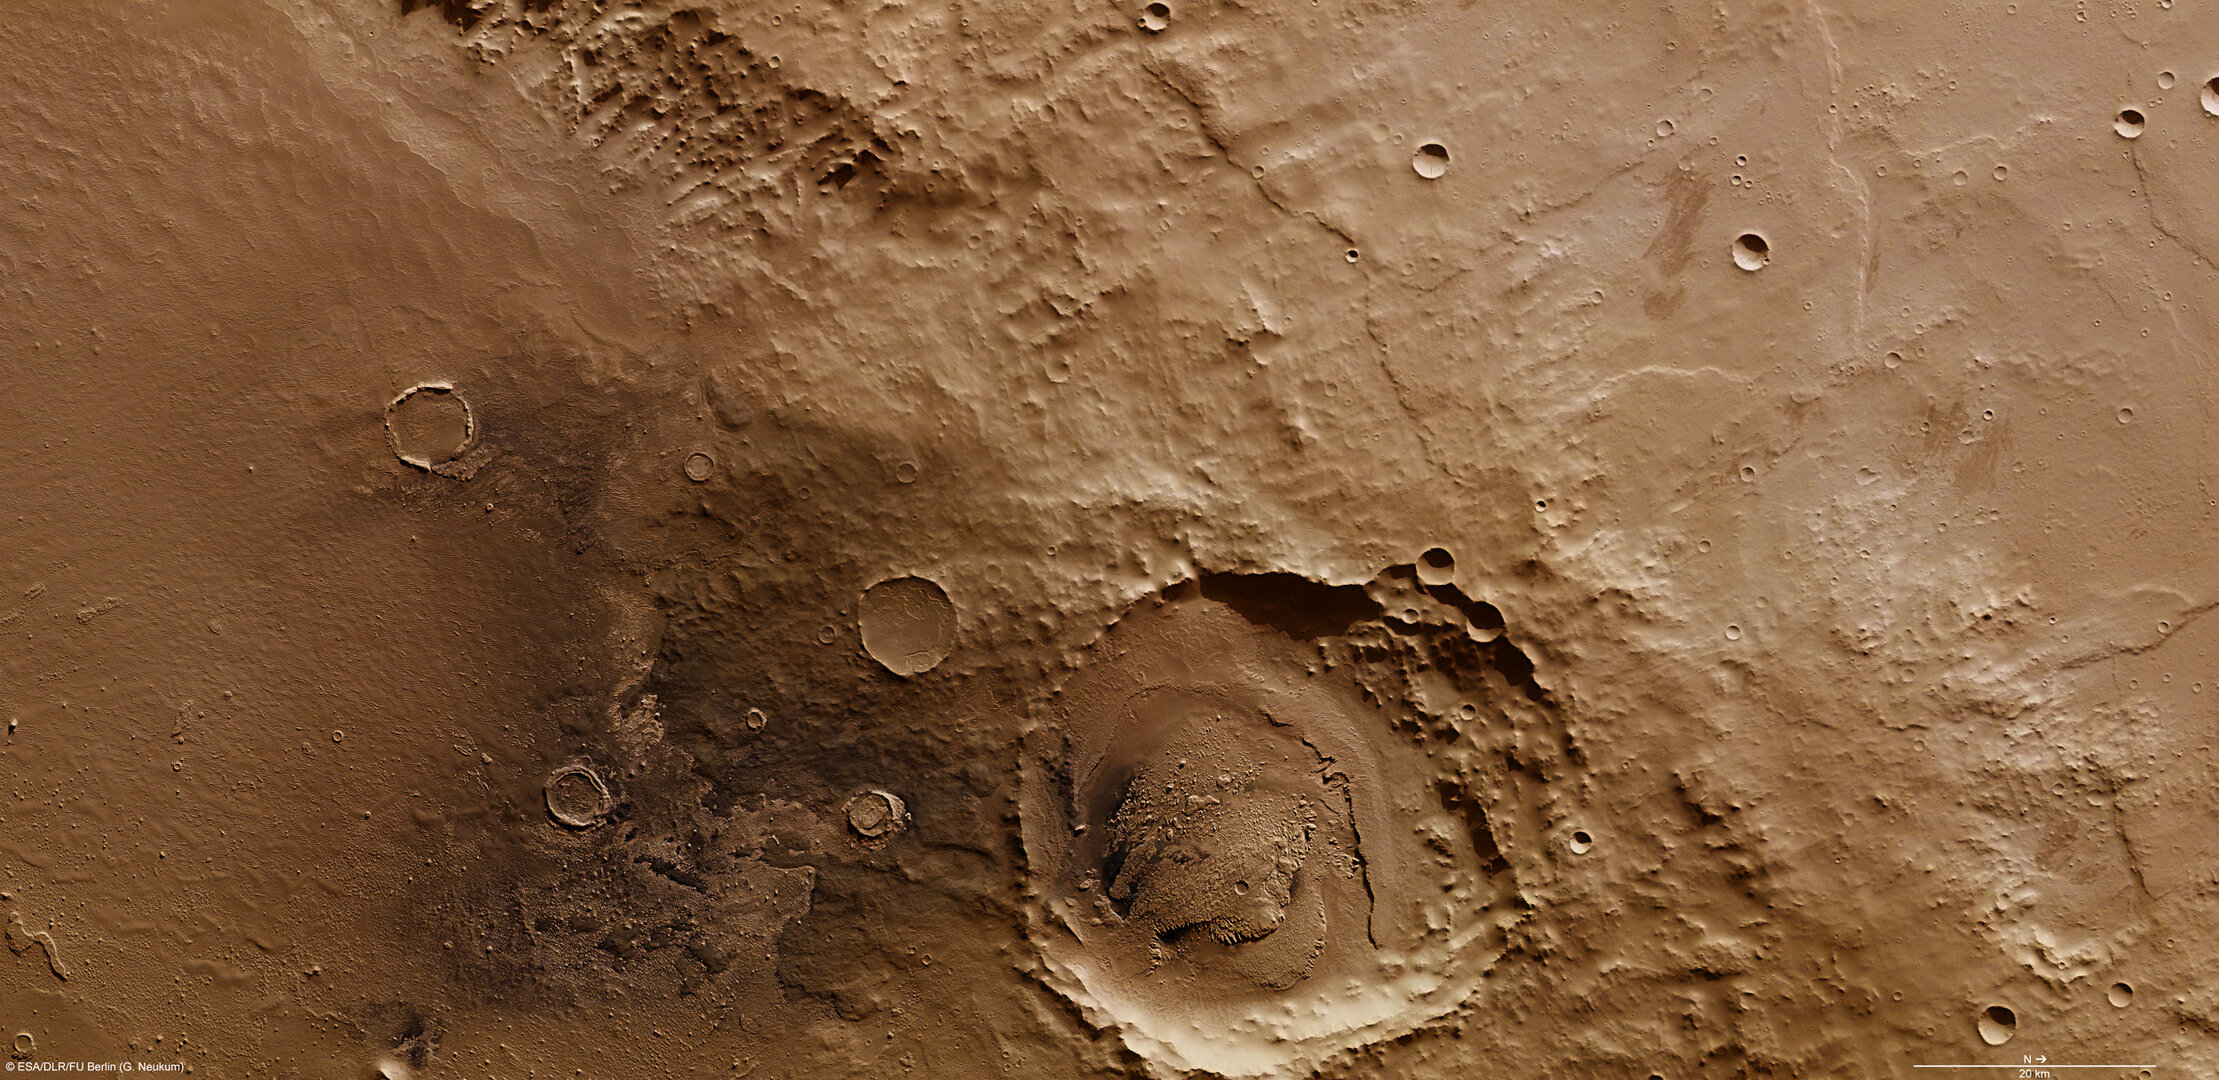 Schiaparelli_on_Mars_pillars.jpg